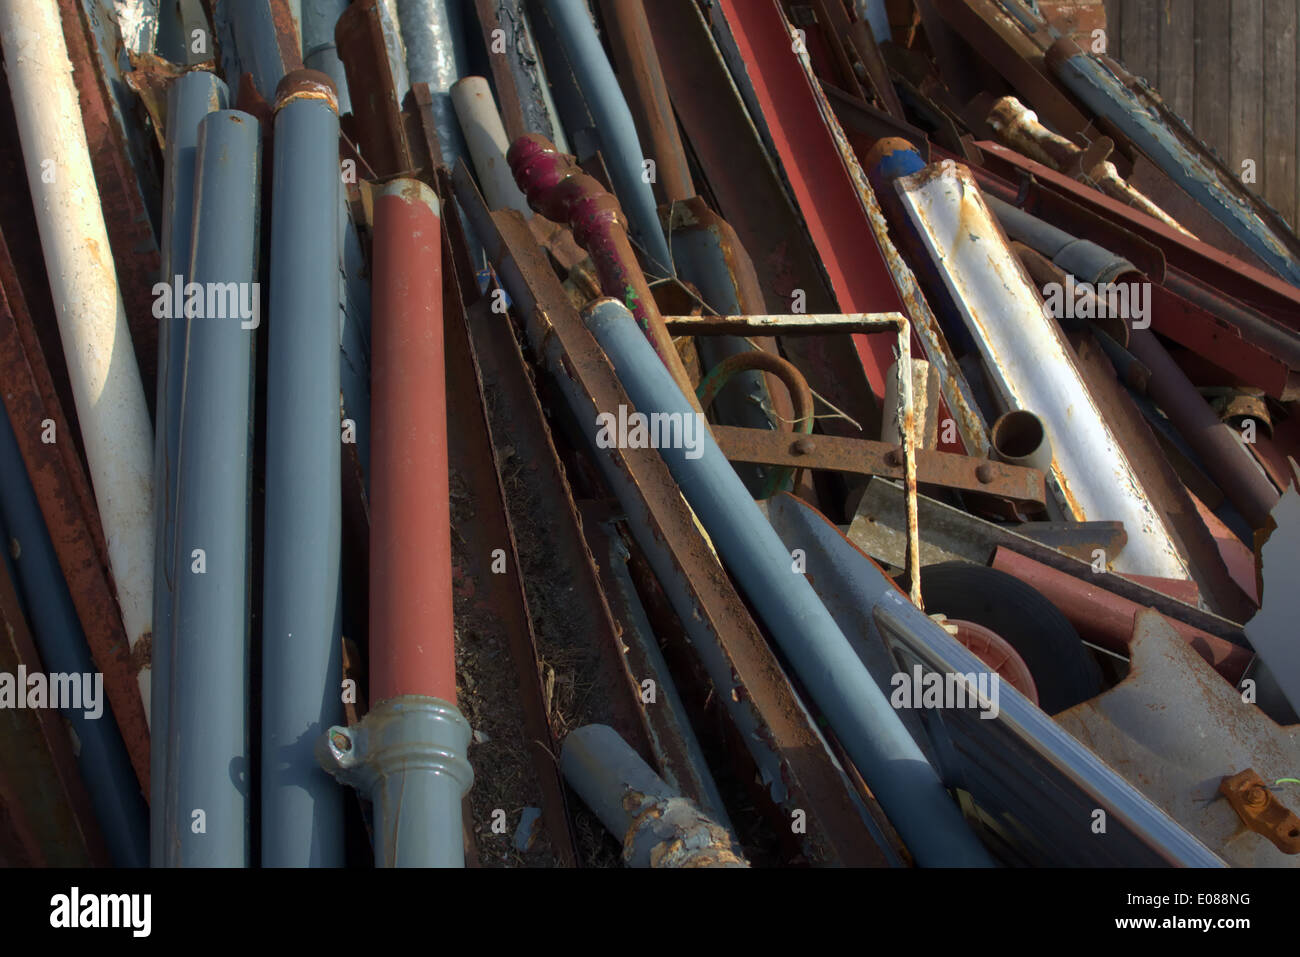 Reclaimed cast iron gutter and downpipe sections for recycling and reuse on repair and replacement work - Stock Image